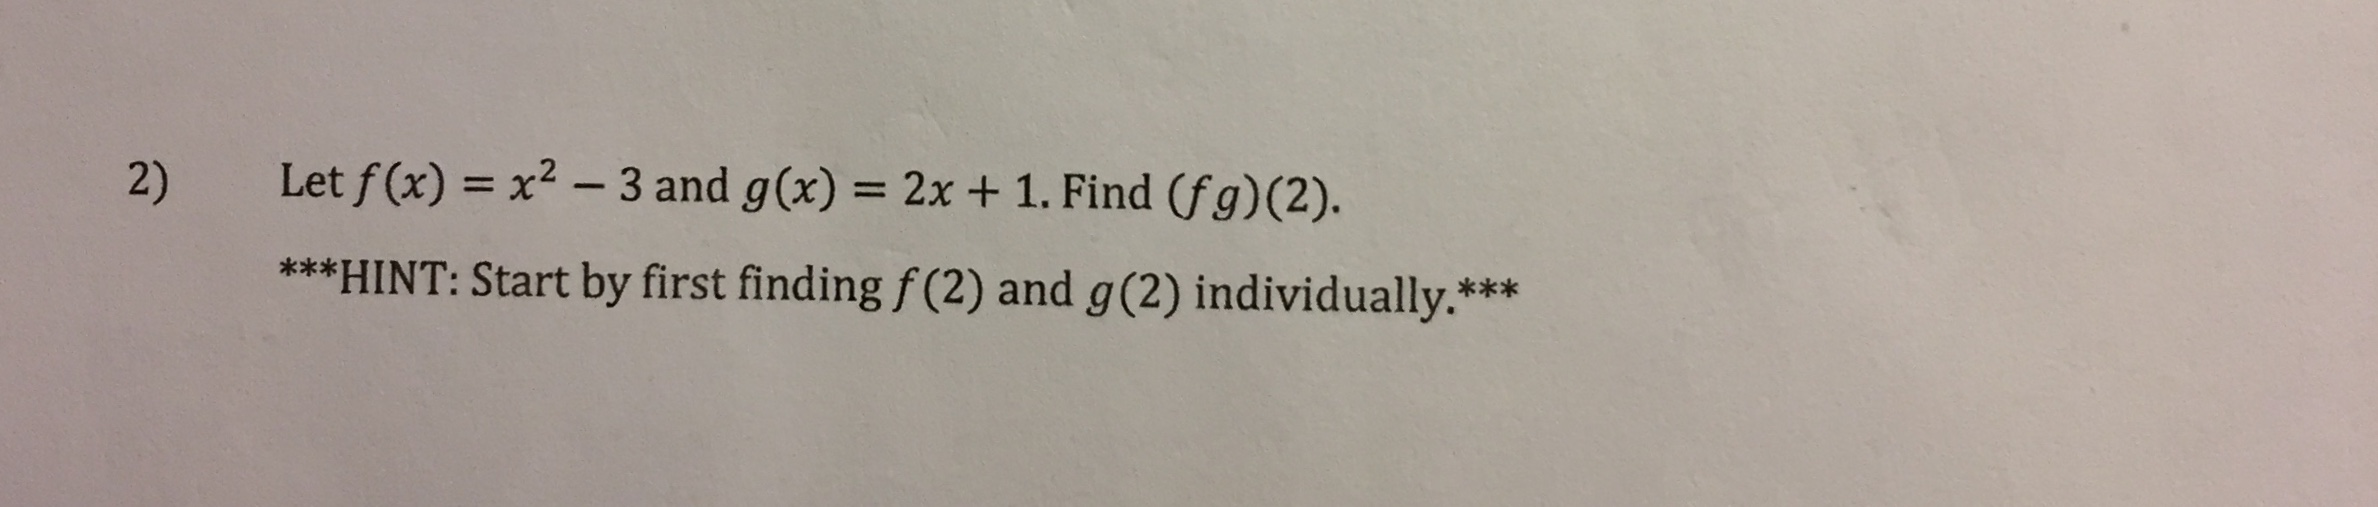 Let f (x) = x2 - 3 and g(x) = 2x + 1. Find (fg)(2). 2) ***HINT: Start by first finding f (2) and g(2) individually.***